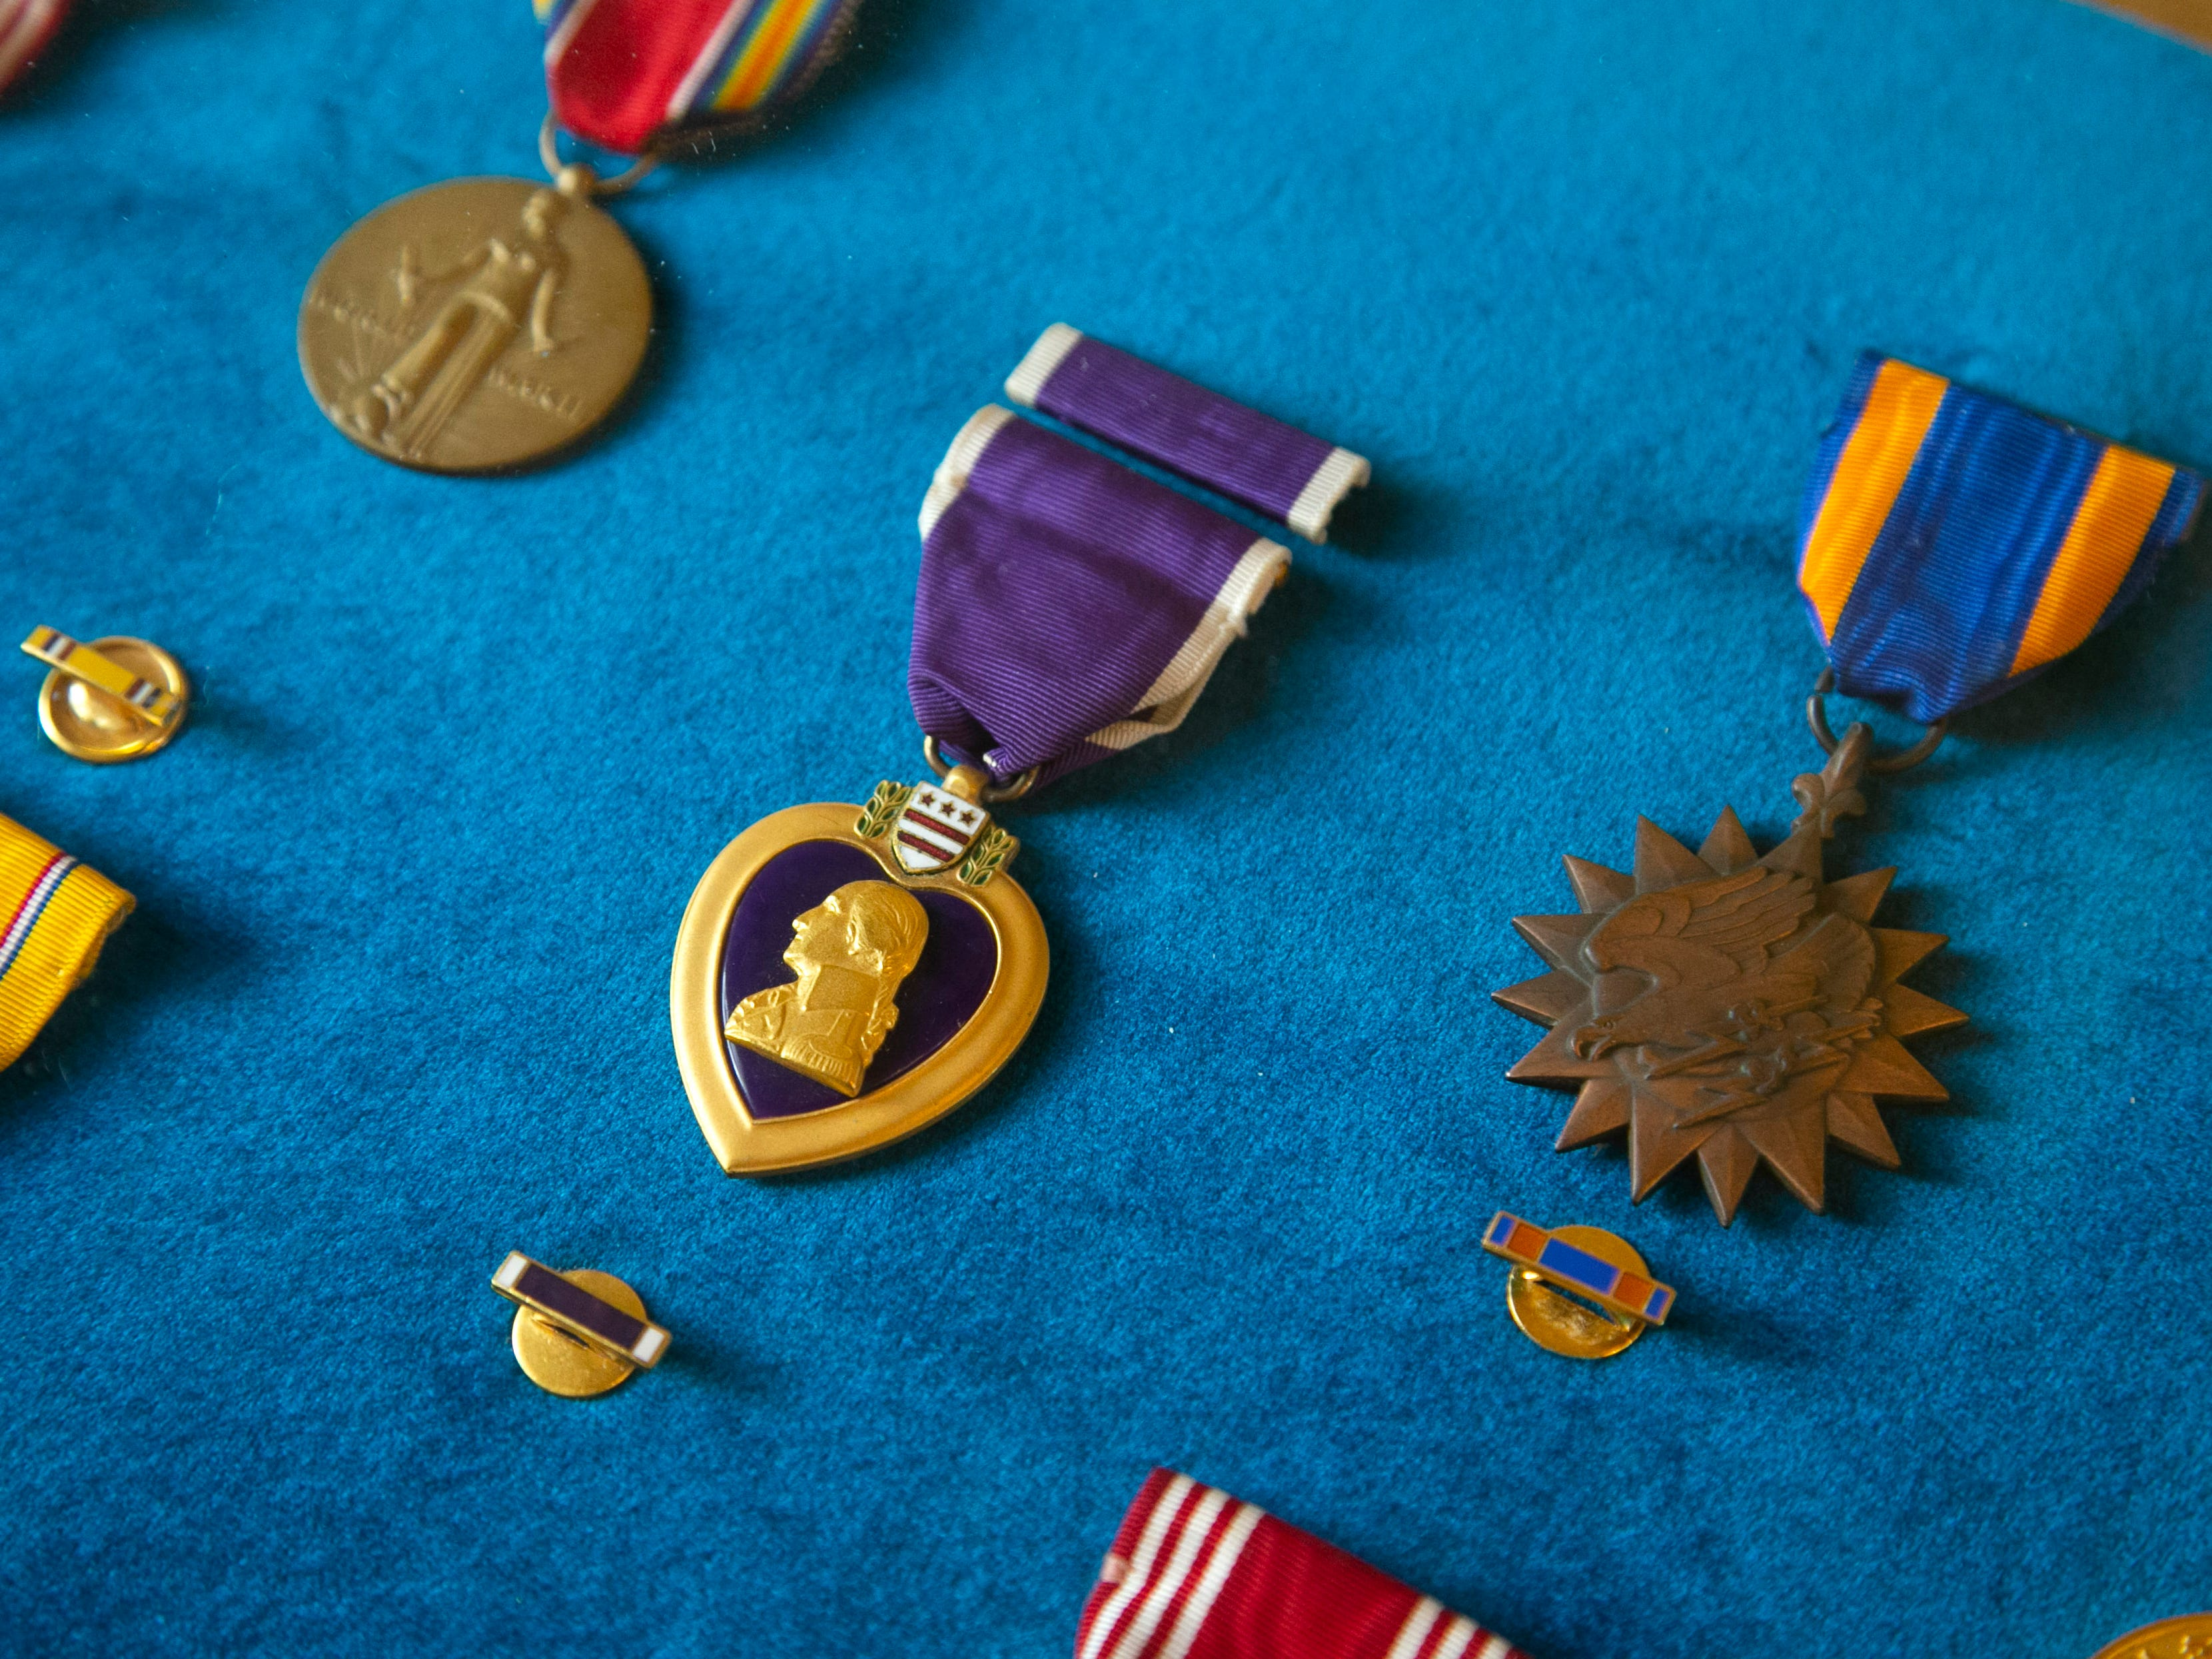 Military medals including the Purple Heart (center) won by Staff Sergeant Joe Campos who served in World War II and the Korean War. Campos, a gunner on a B-26 bomber was likely the first American killed in the Korean War when his plane went down in the Yellow Sea on June 28, 1950.